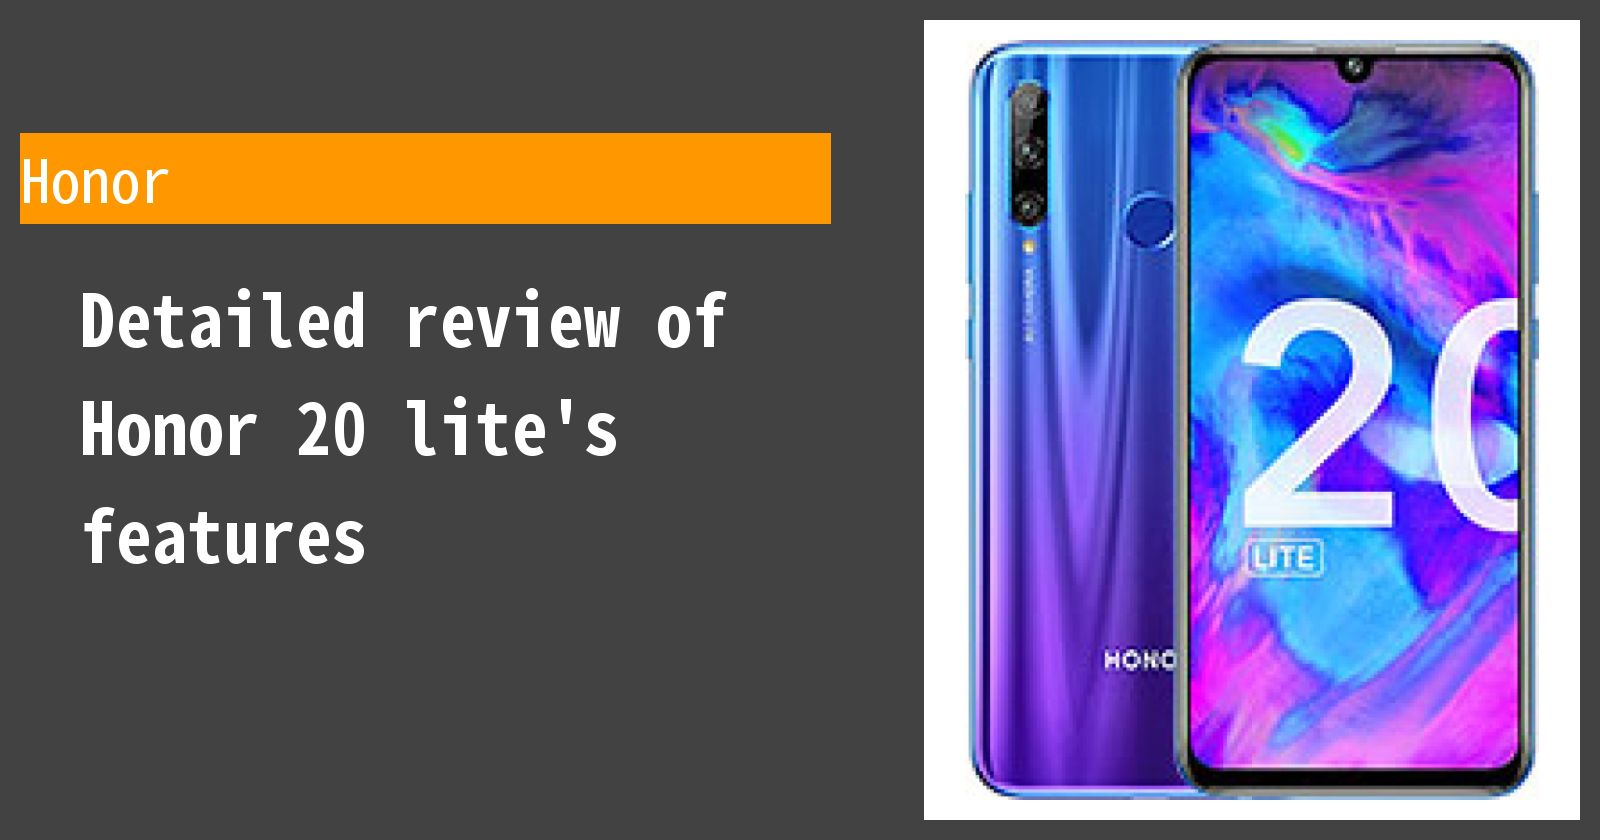 Detailed review of Honor 20 lite's features